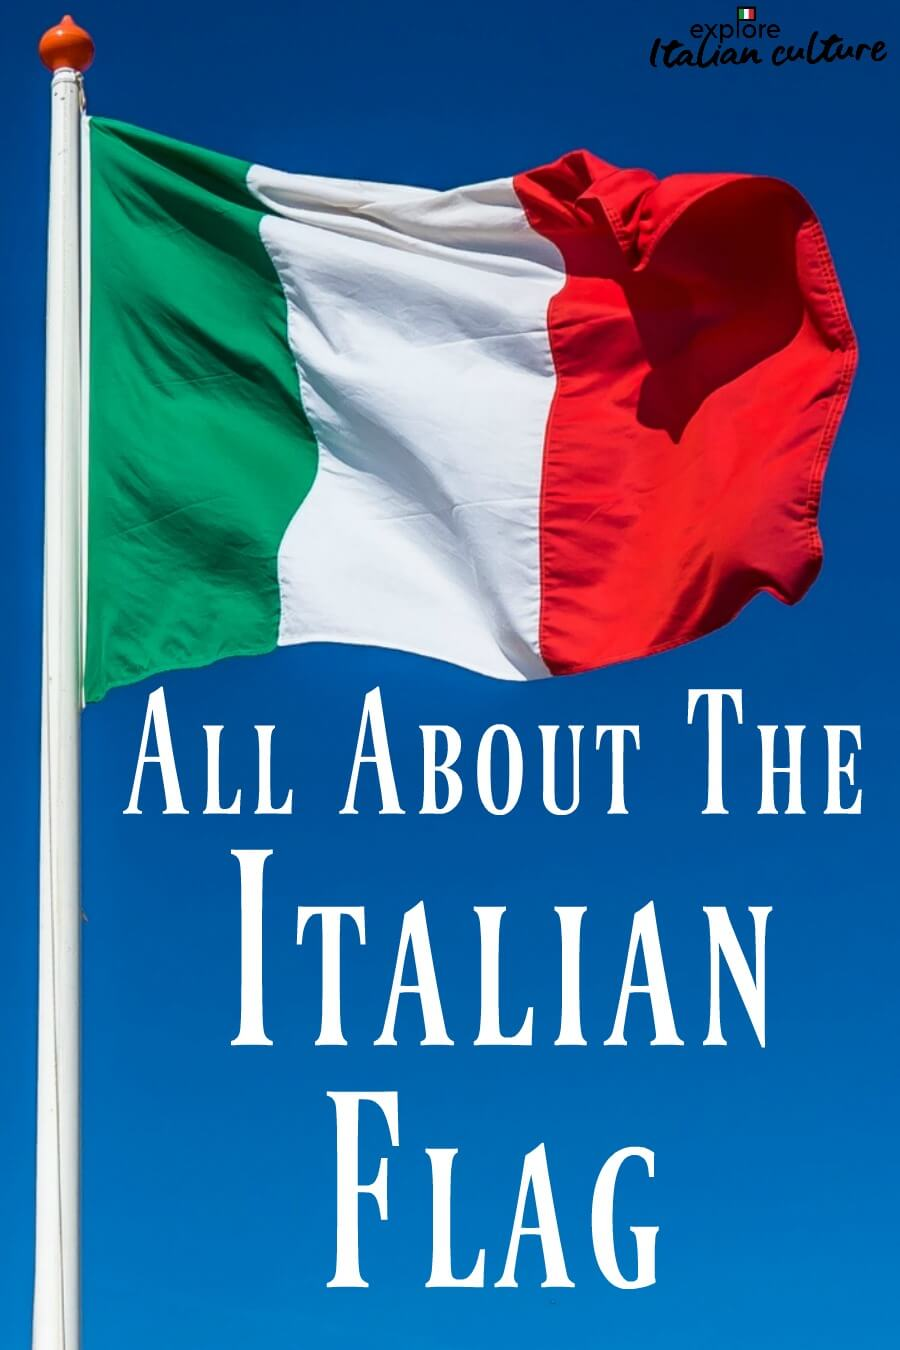 Facts about the Italian flag. Pin for later.